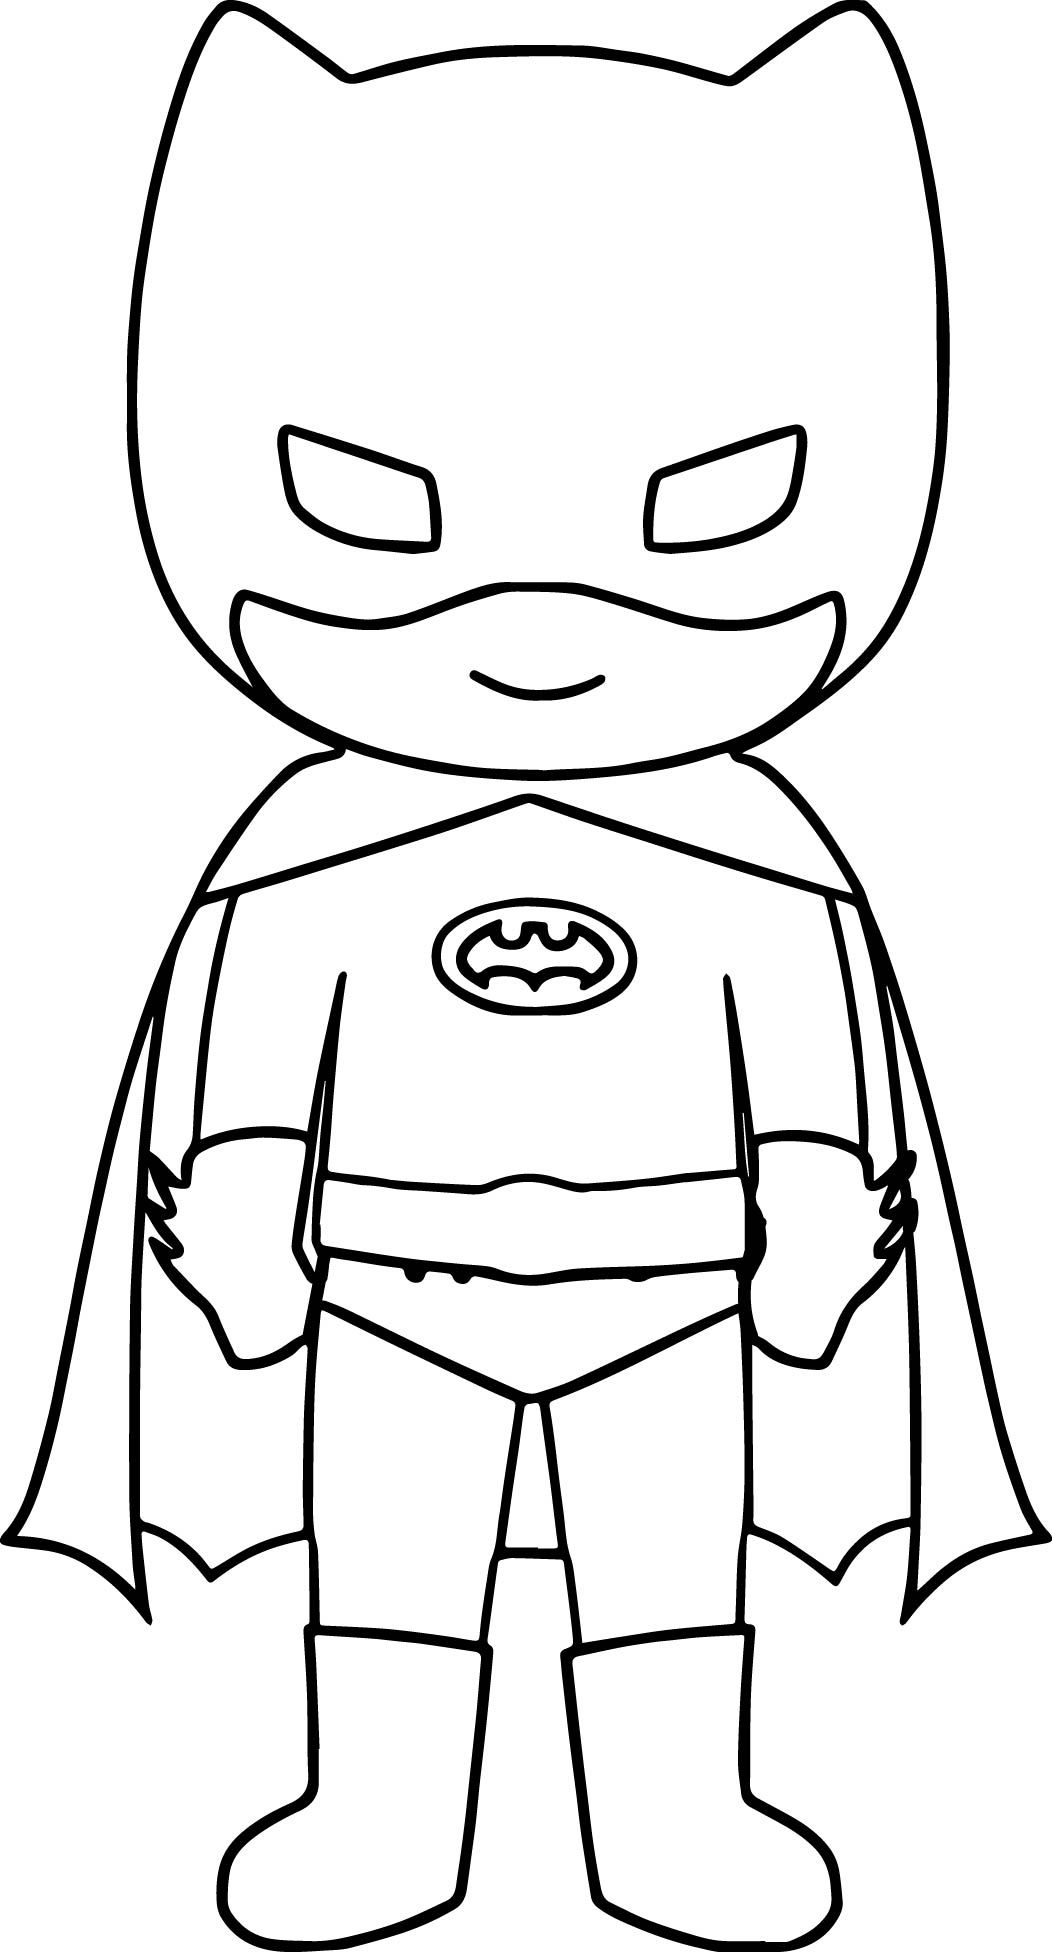 Cool Bat Superhero Kids Coloring Page Batman Coloring Pages Super Hero Coloring Sheets Avengers Coloring Pages